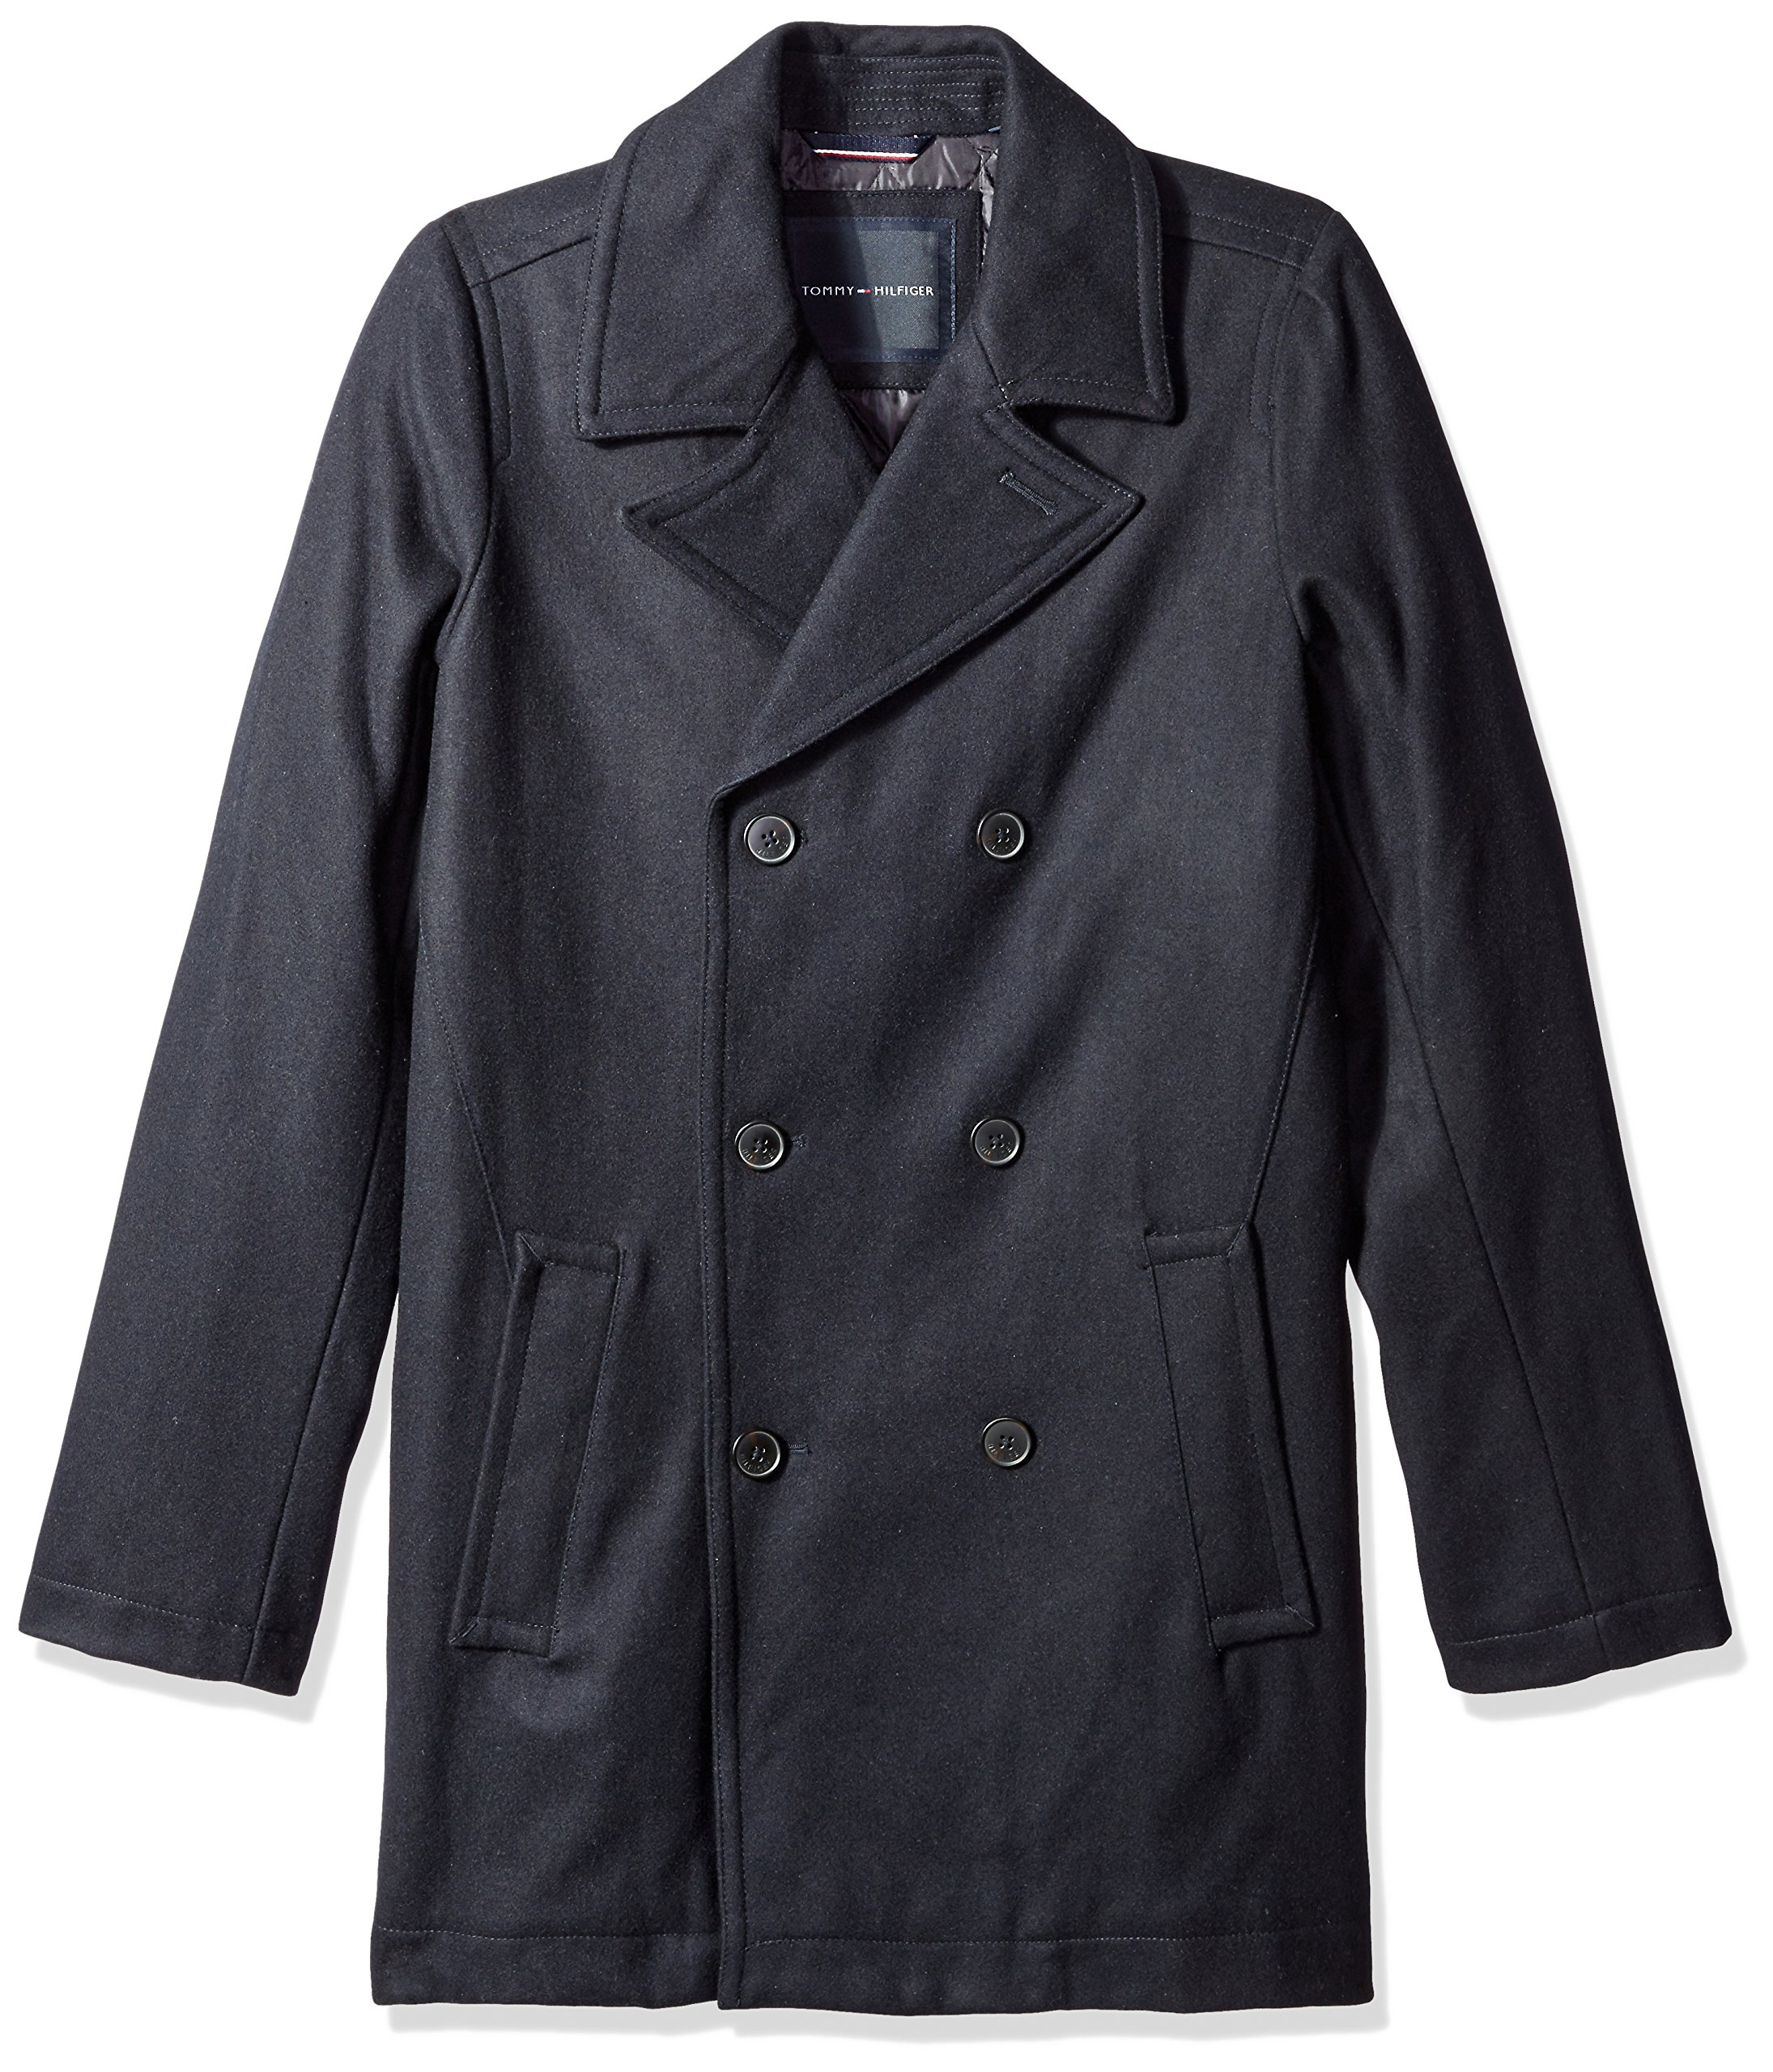 Tommy Hilfiger Men's Big-Tall Classic Peacoat, Black, X-Large/Tall by Tommy Hilfiger